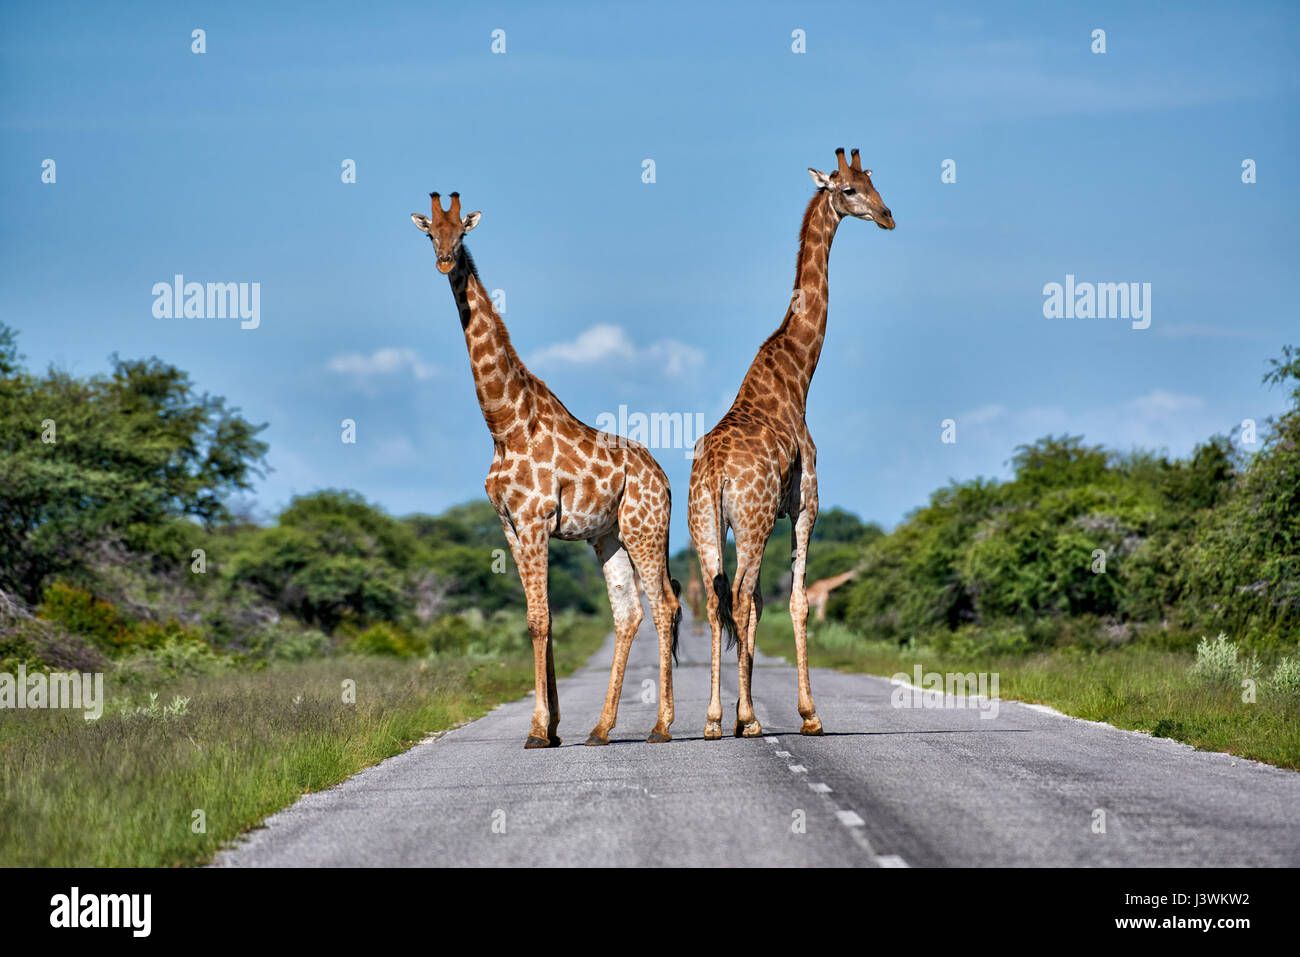 giraffes on road in Etosha National Park - Stock Image